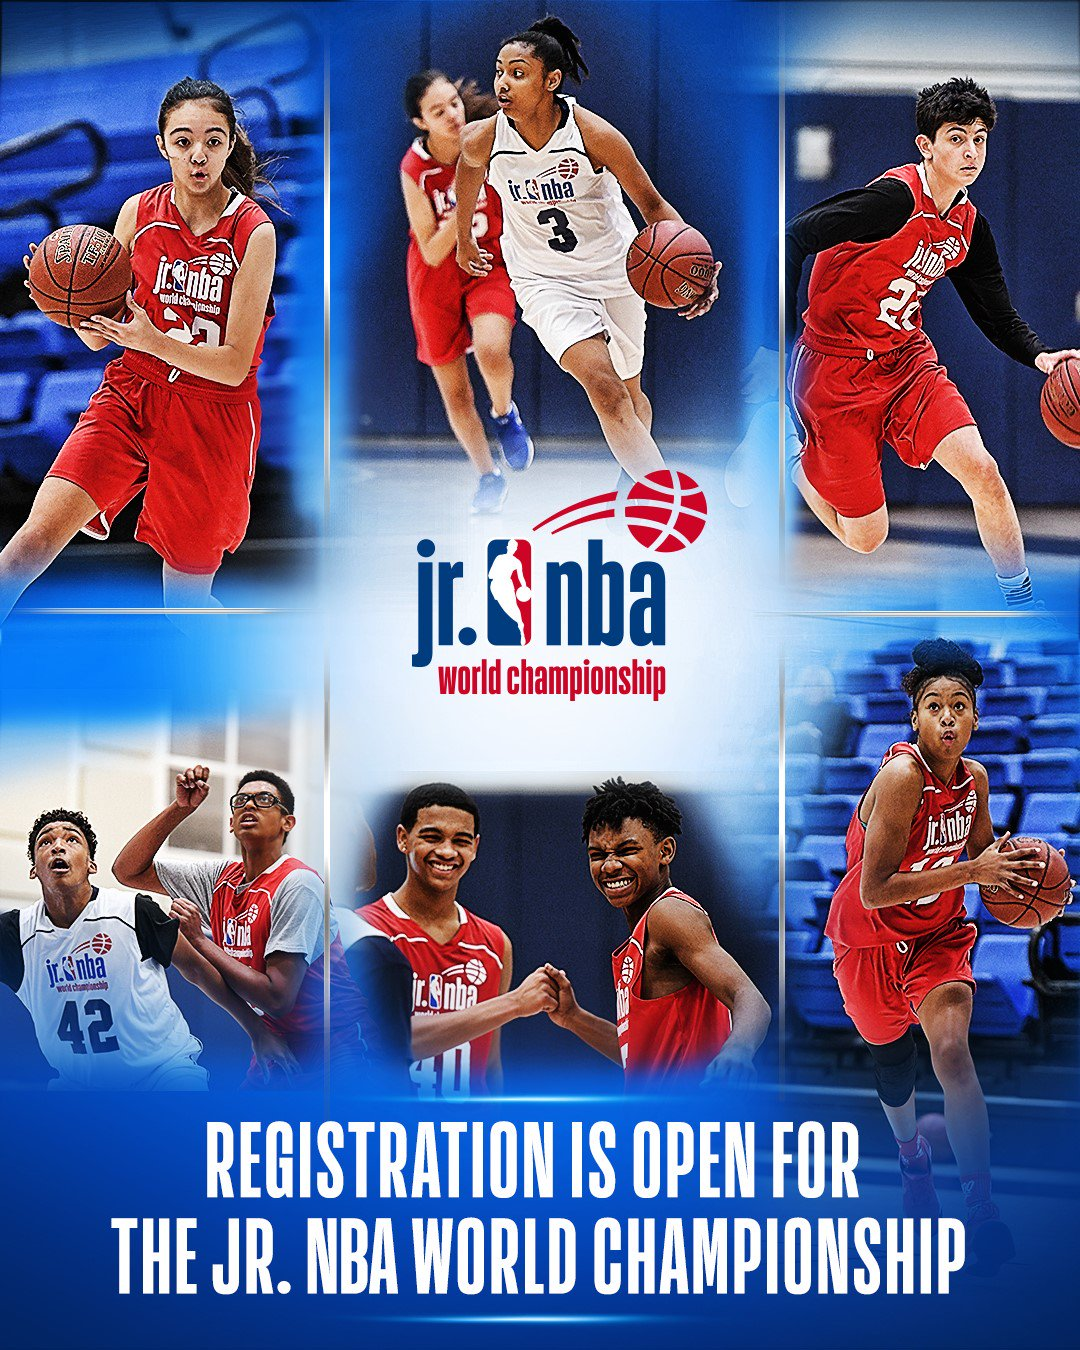 Get ready! It's time to register your team for the first-ever #JrNBAWorldChampionship!   https://t.co/25TgpJcTzO https://t.co/e98AW6PgSL